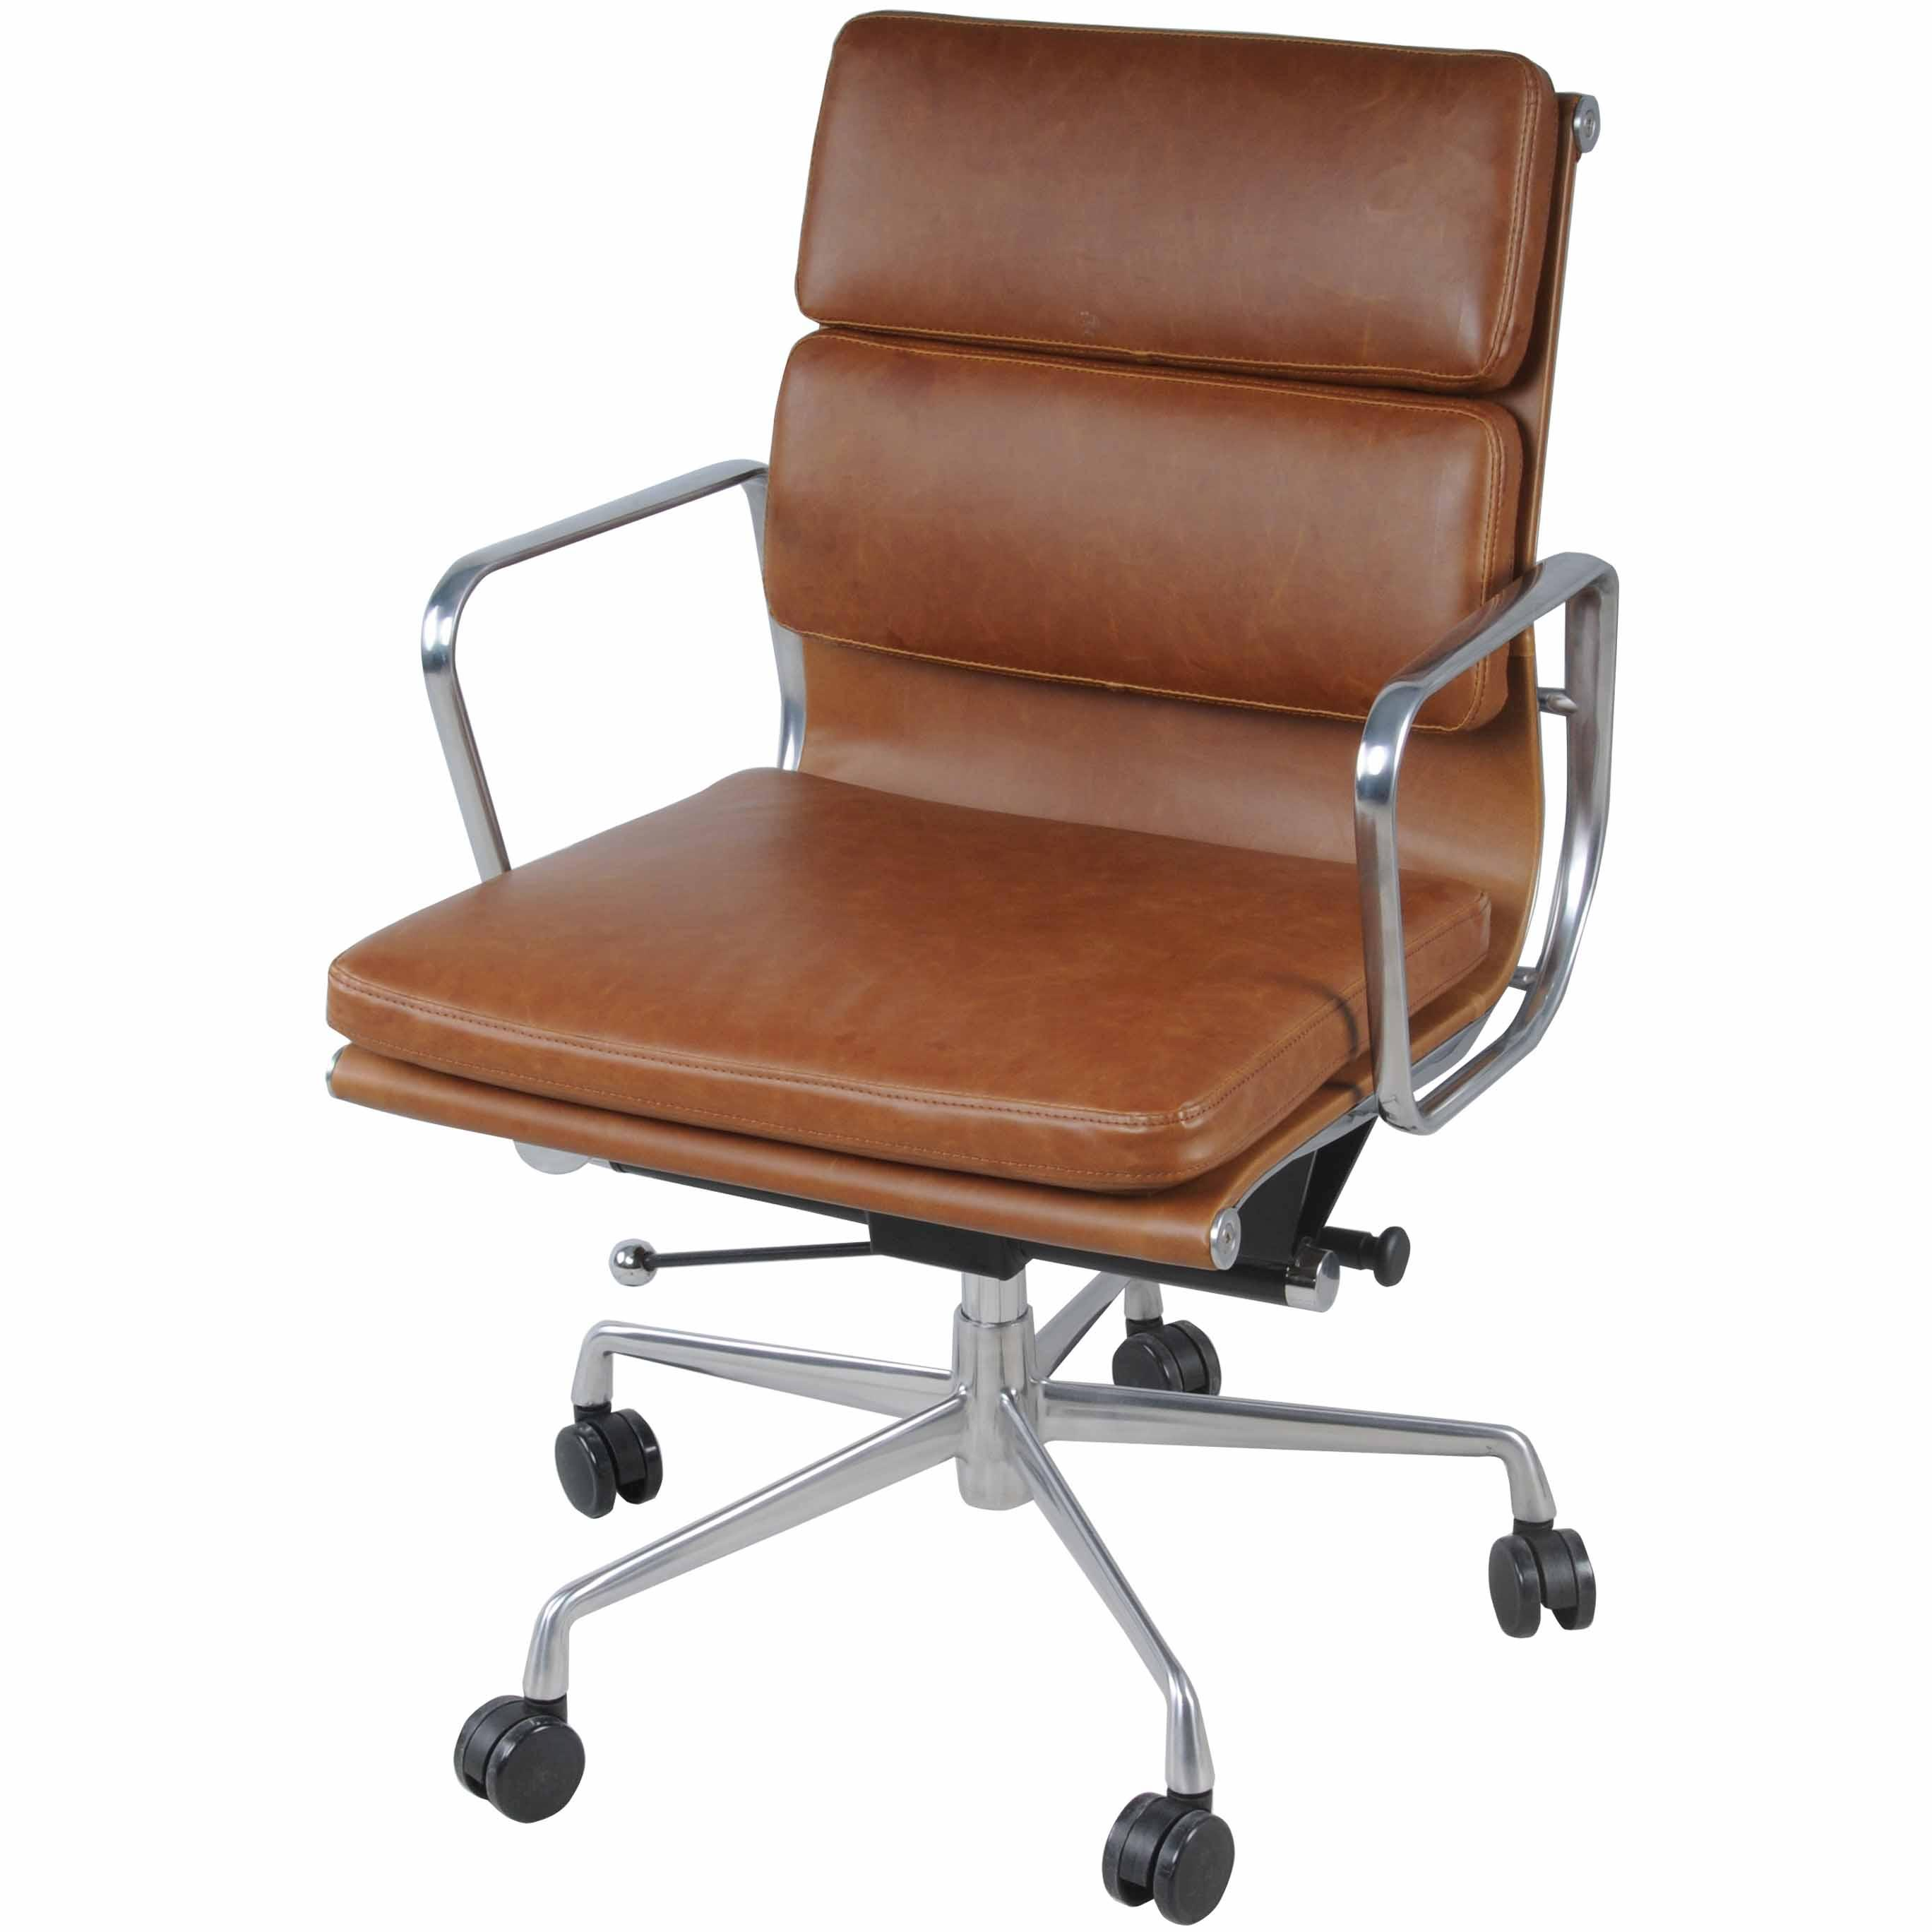 Chandel PU Low Back Office Chair, Vintage Tawny/6900002 VT